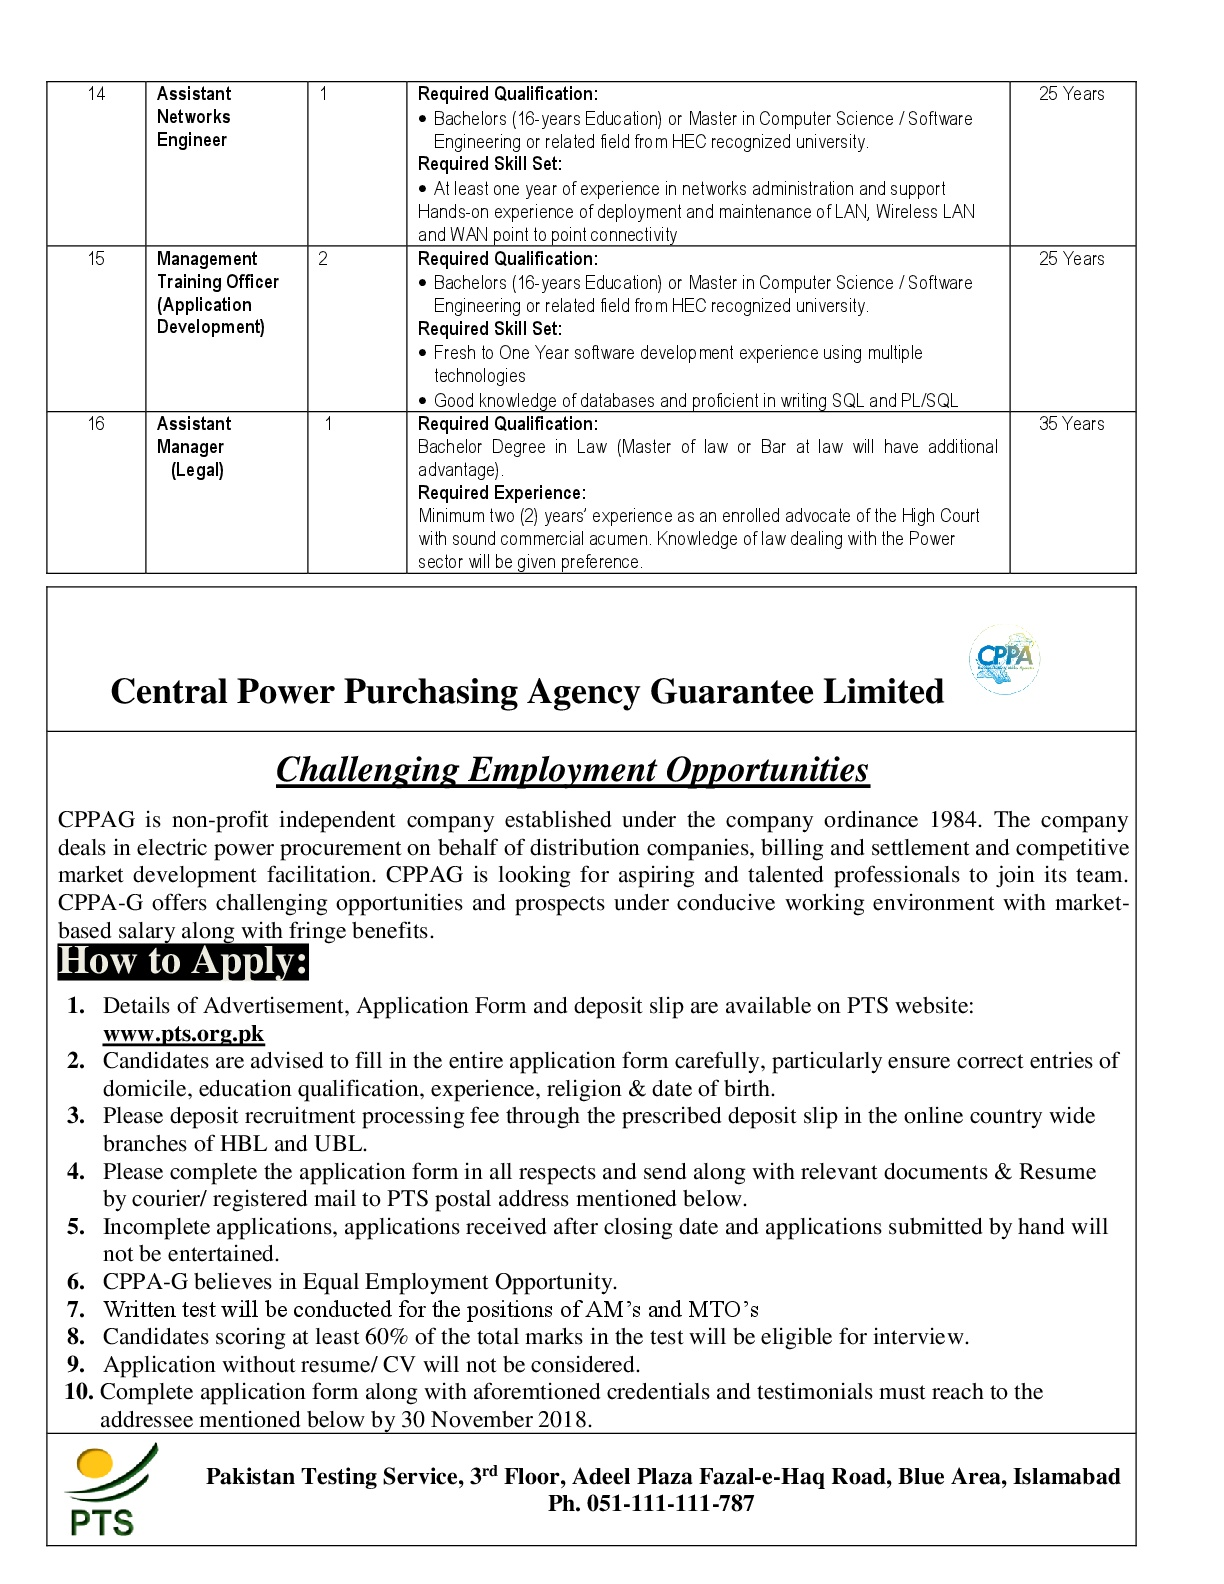 PTS Central Powar Purchasing Agency CPPA Jobs 2018